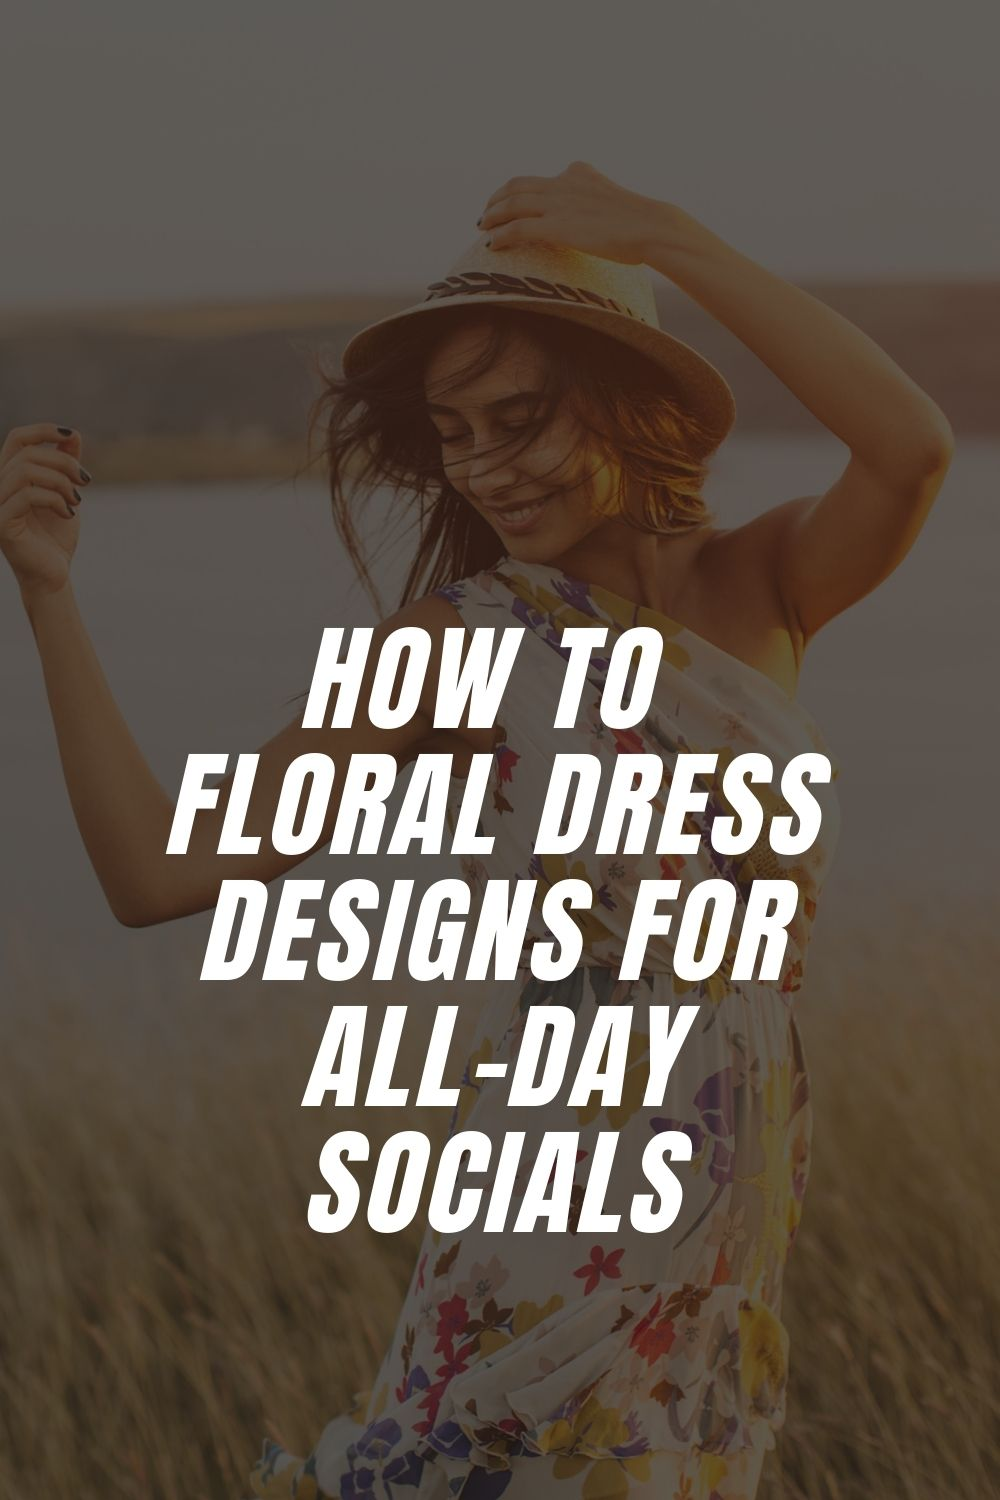 Floral Dress Designs For All-Day Socials